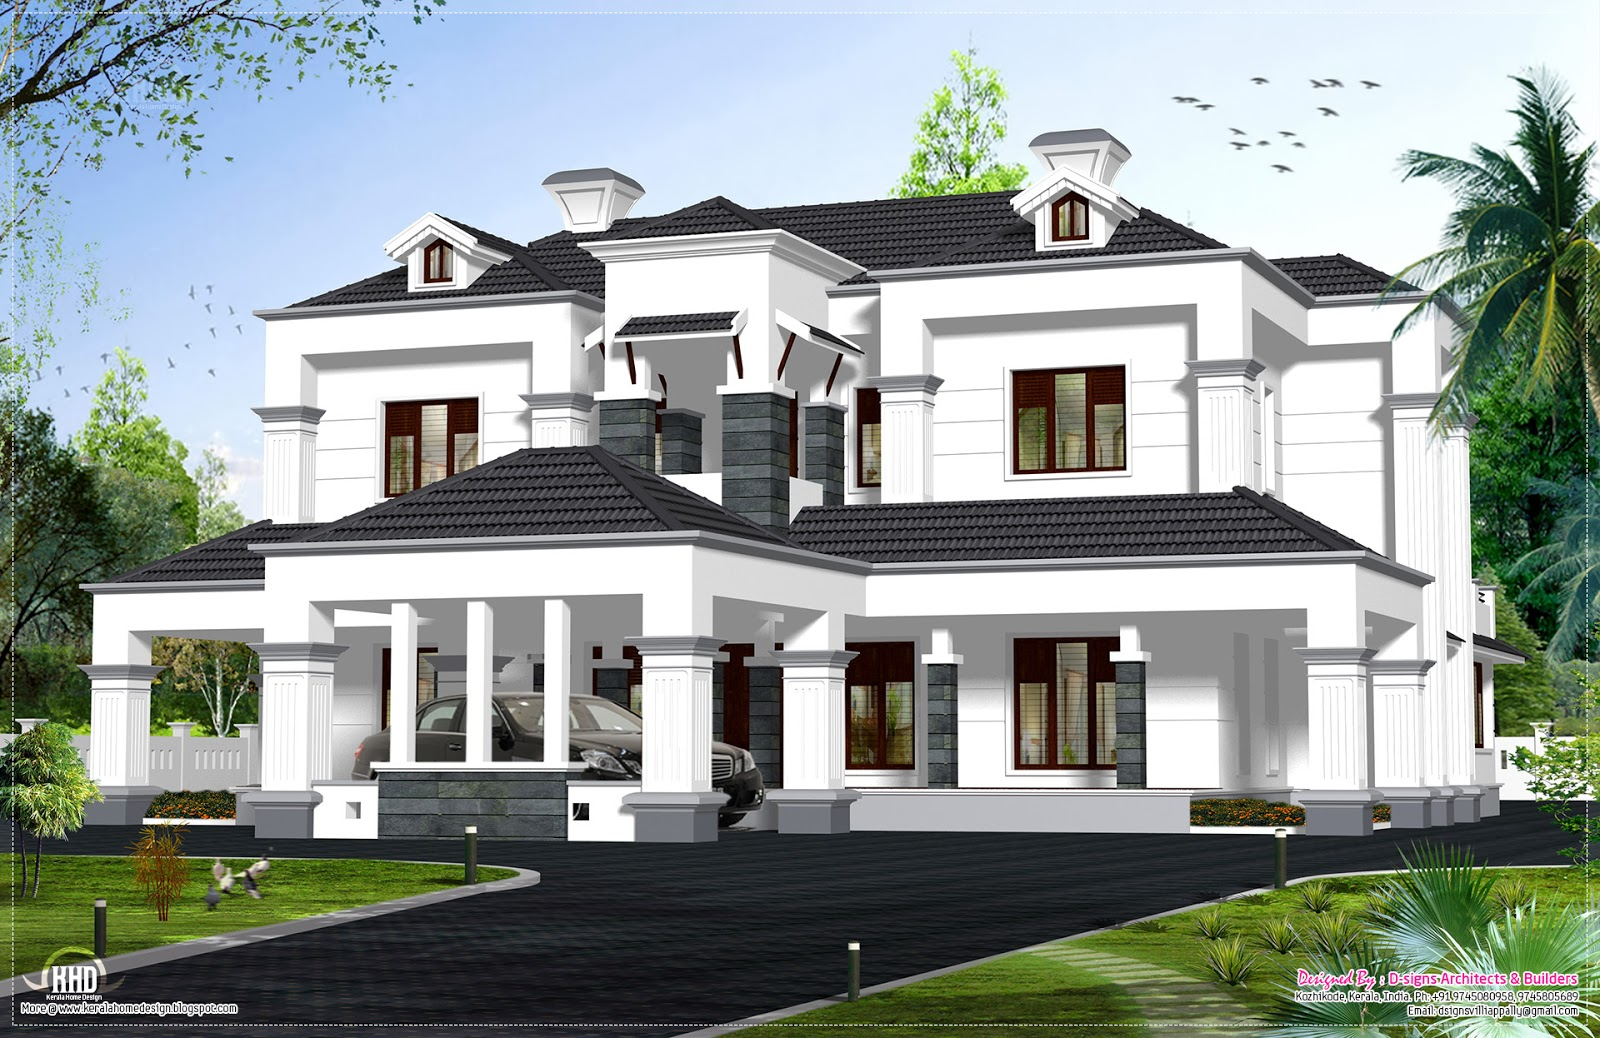 Victorian model house exterior kerala home design and for New home models and plans